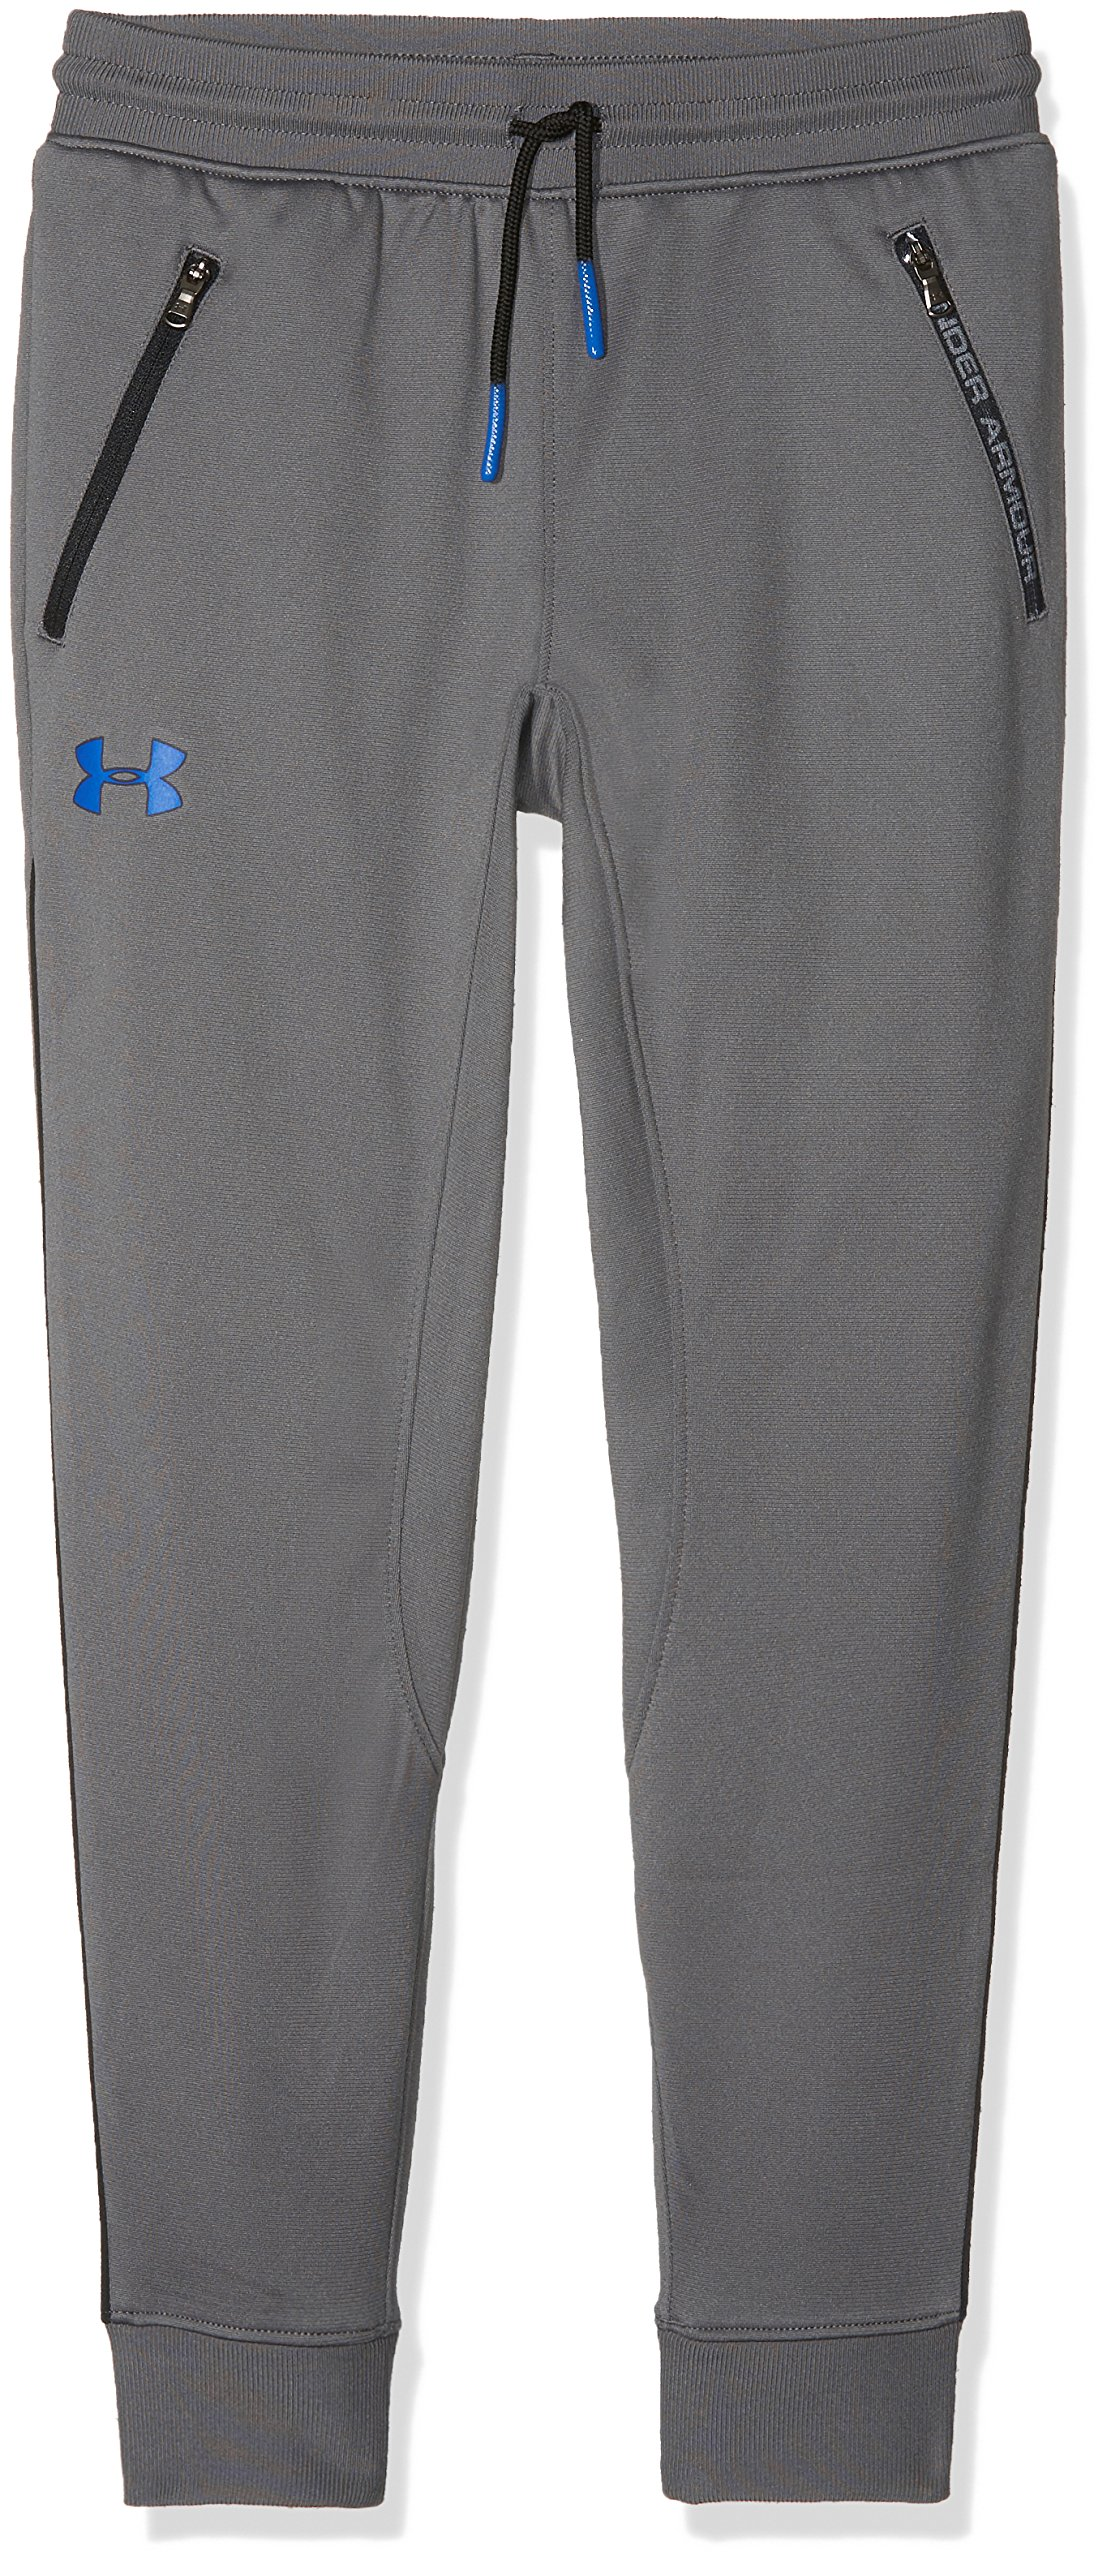 Under Armour Boys' Pennant Tapered Pants,Graphite /Ultra Blue, Youth Large